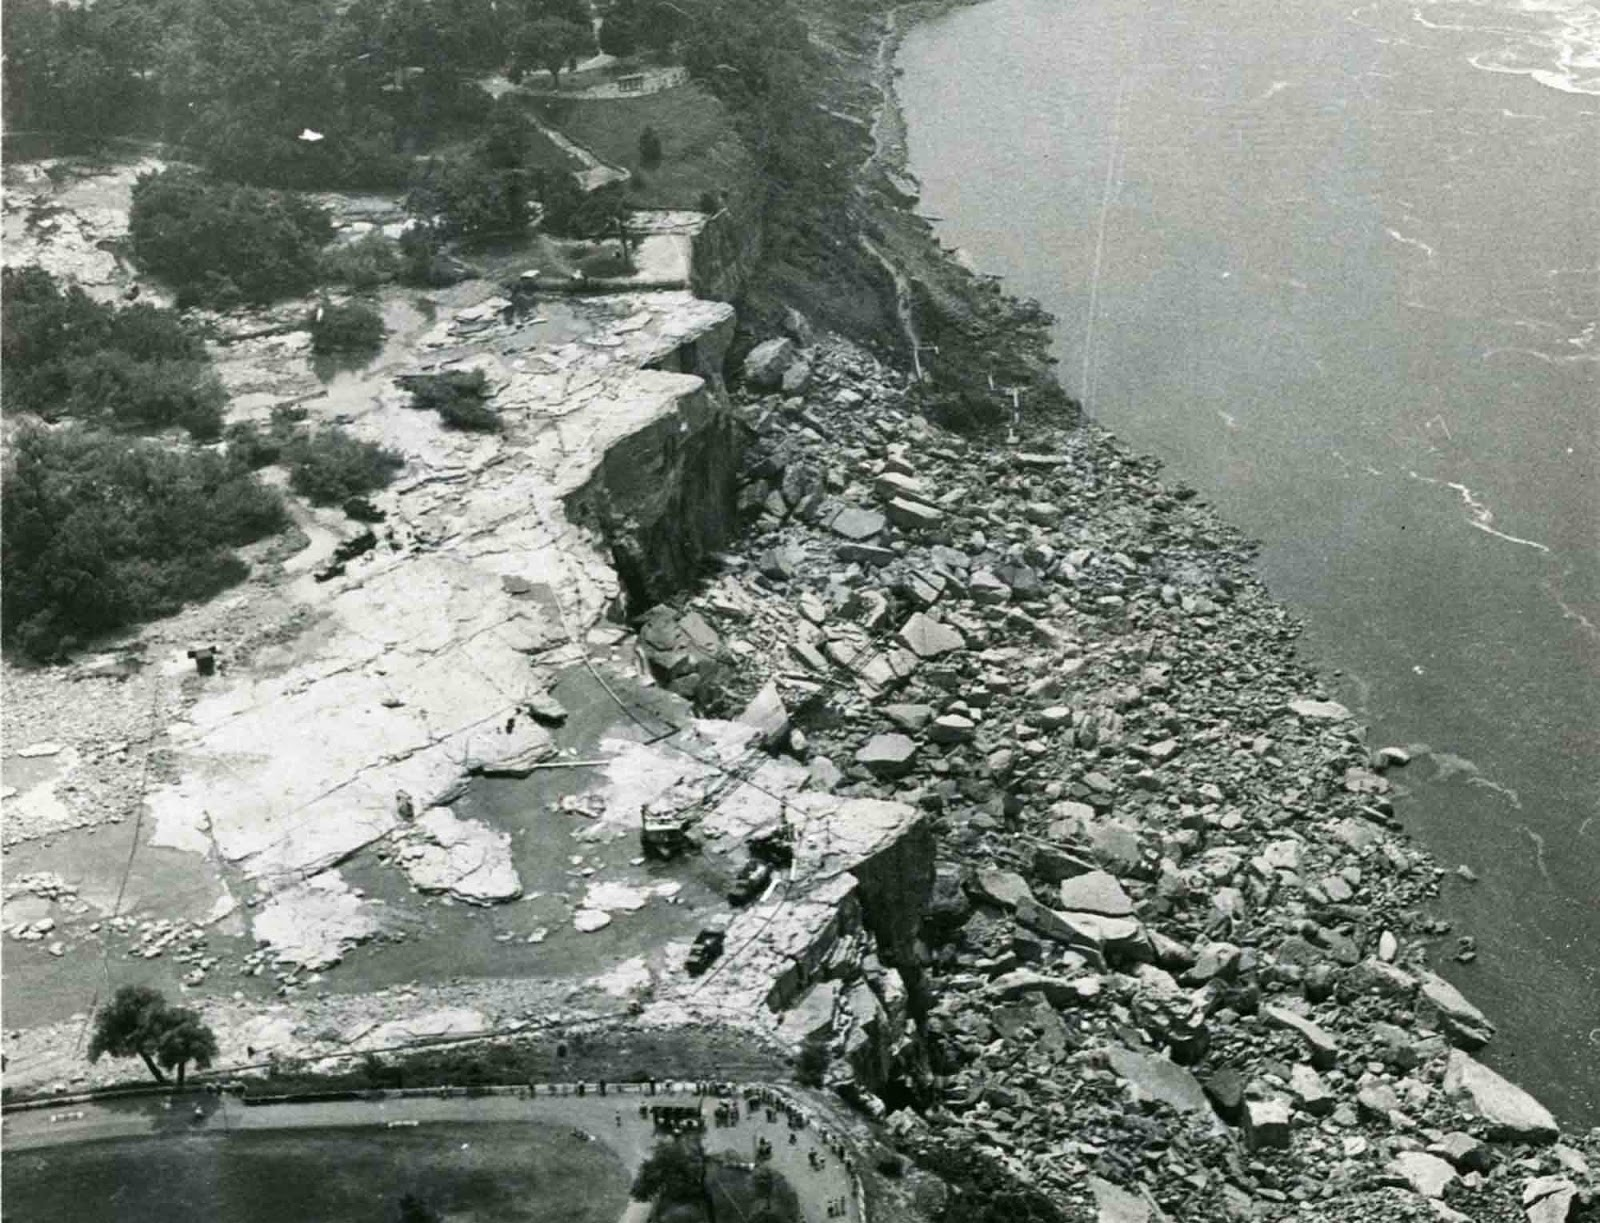 niagara_falls_without_water_1969_6.jpg